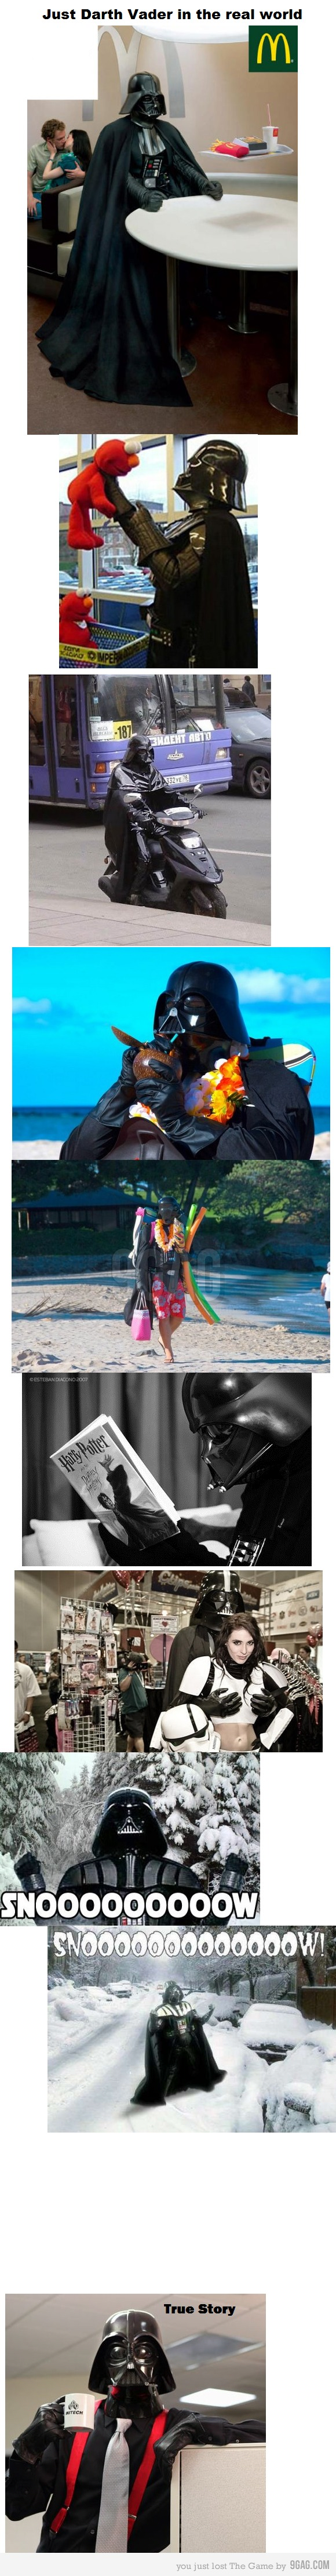 Darth Vader in the real world